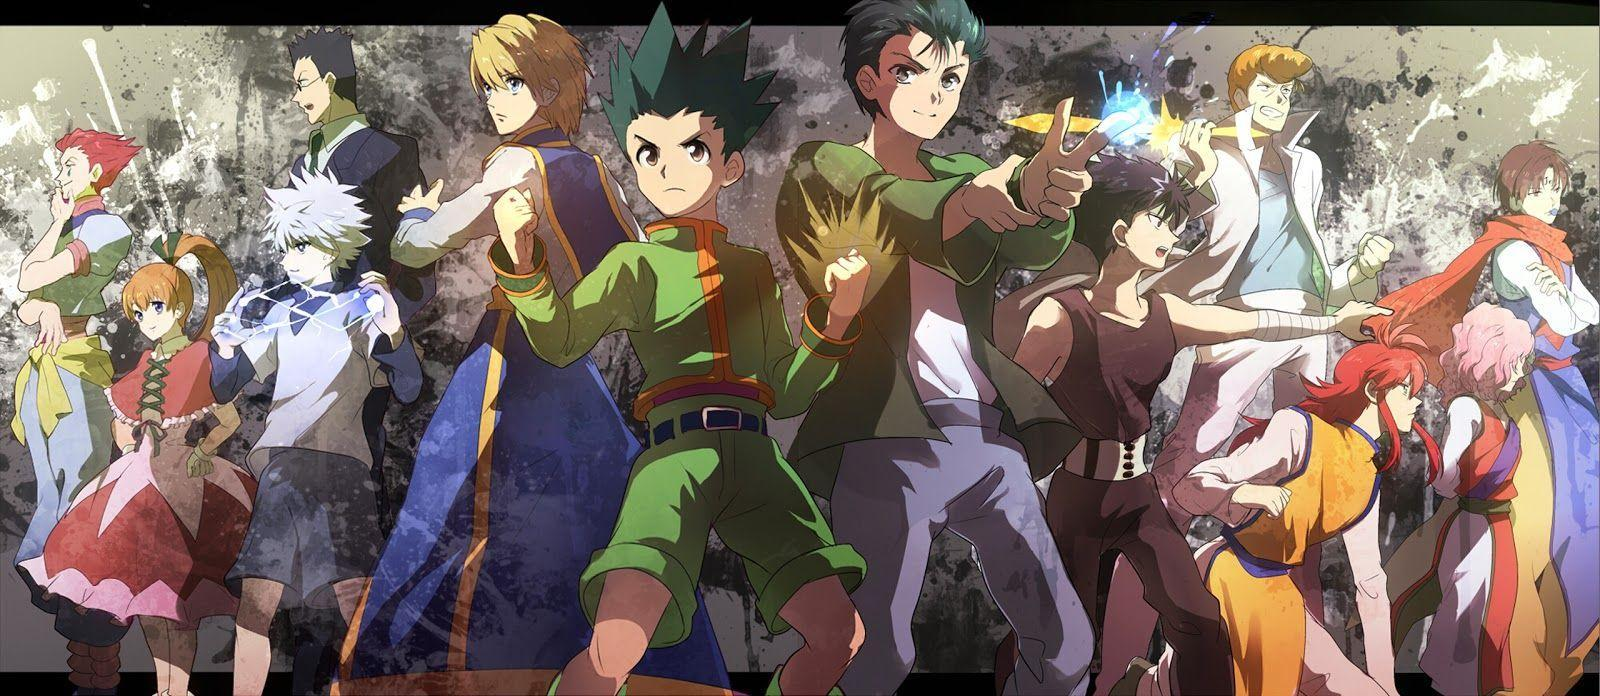 Wallpaper use only, dmca contact us. Hunter X Hunter Wallpapers - Wallpaper Cave